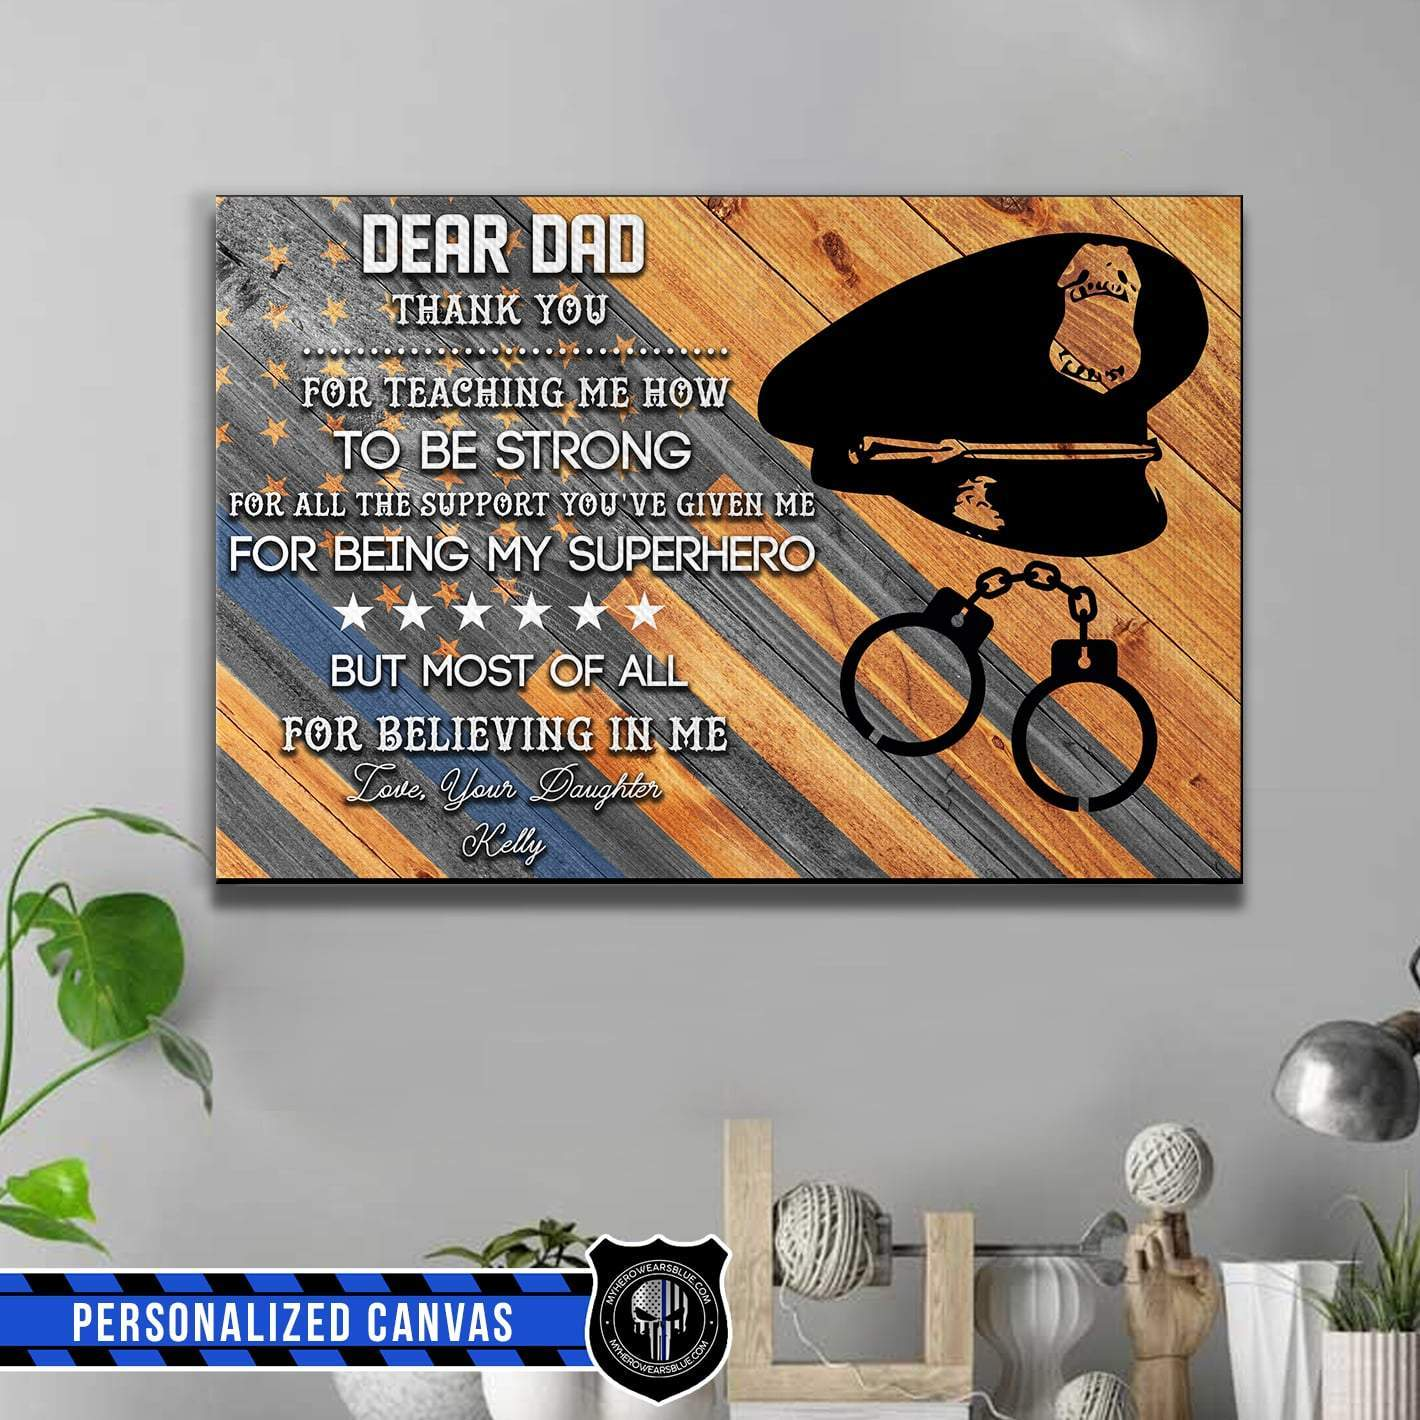 Personalized Canvas - Dear Dad Letter